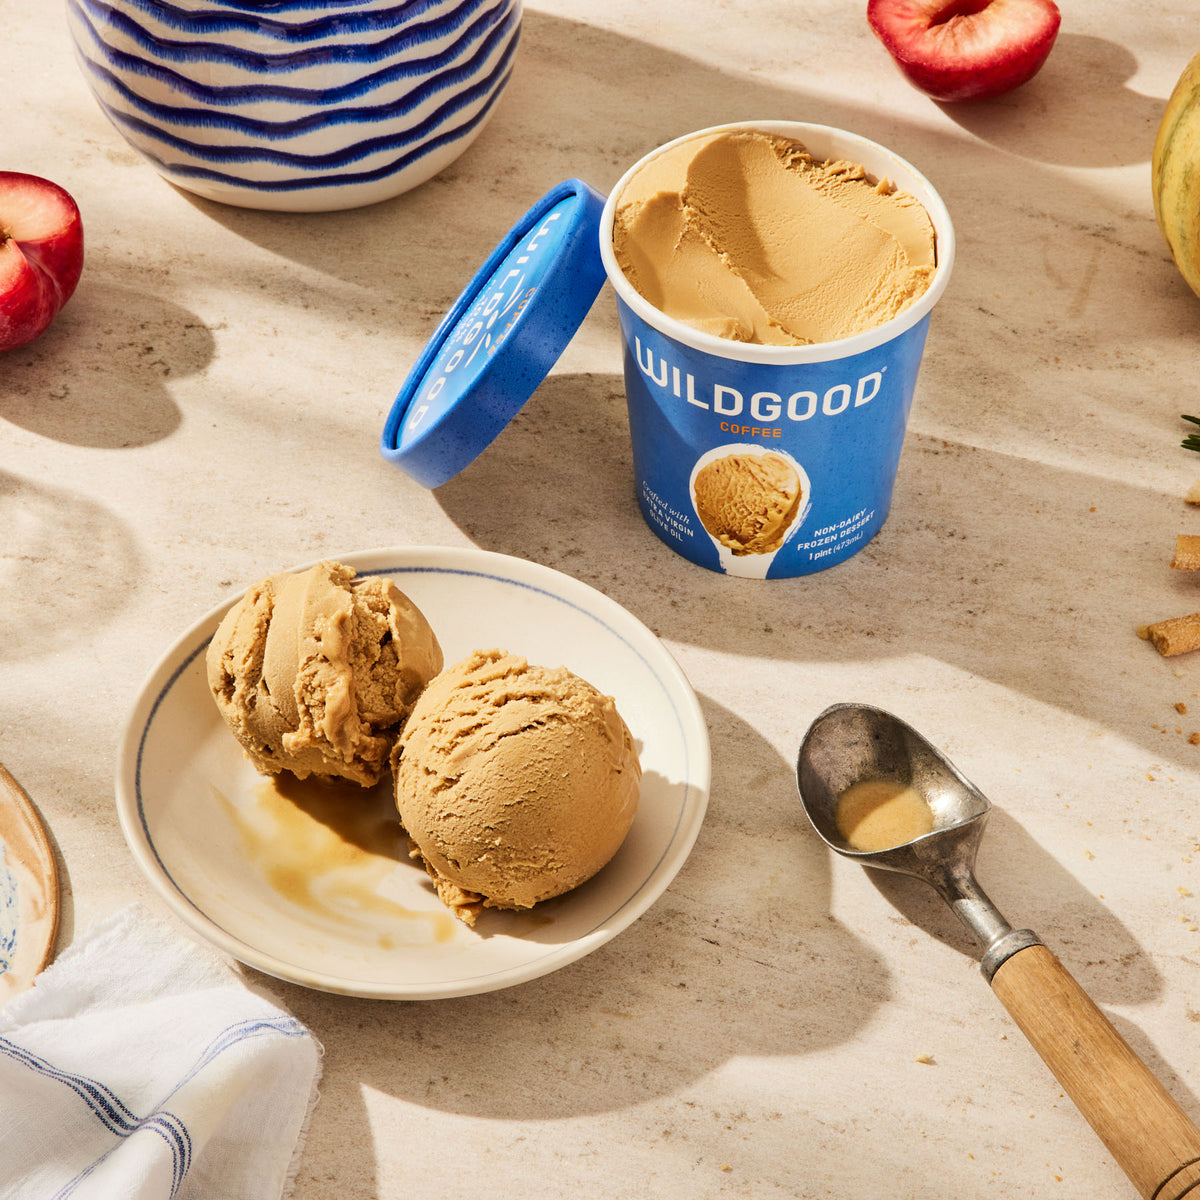 Wildgood plant-based ice cream made with extra virgin olive oil coffee